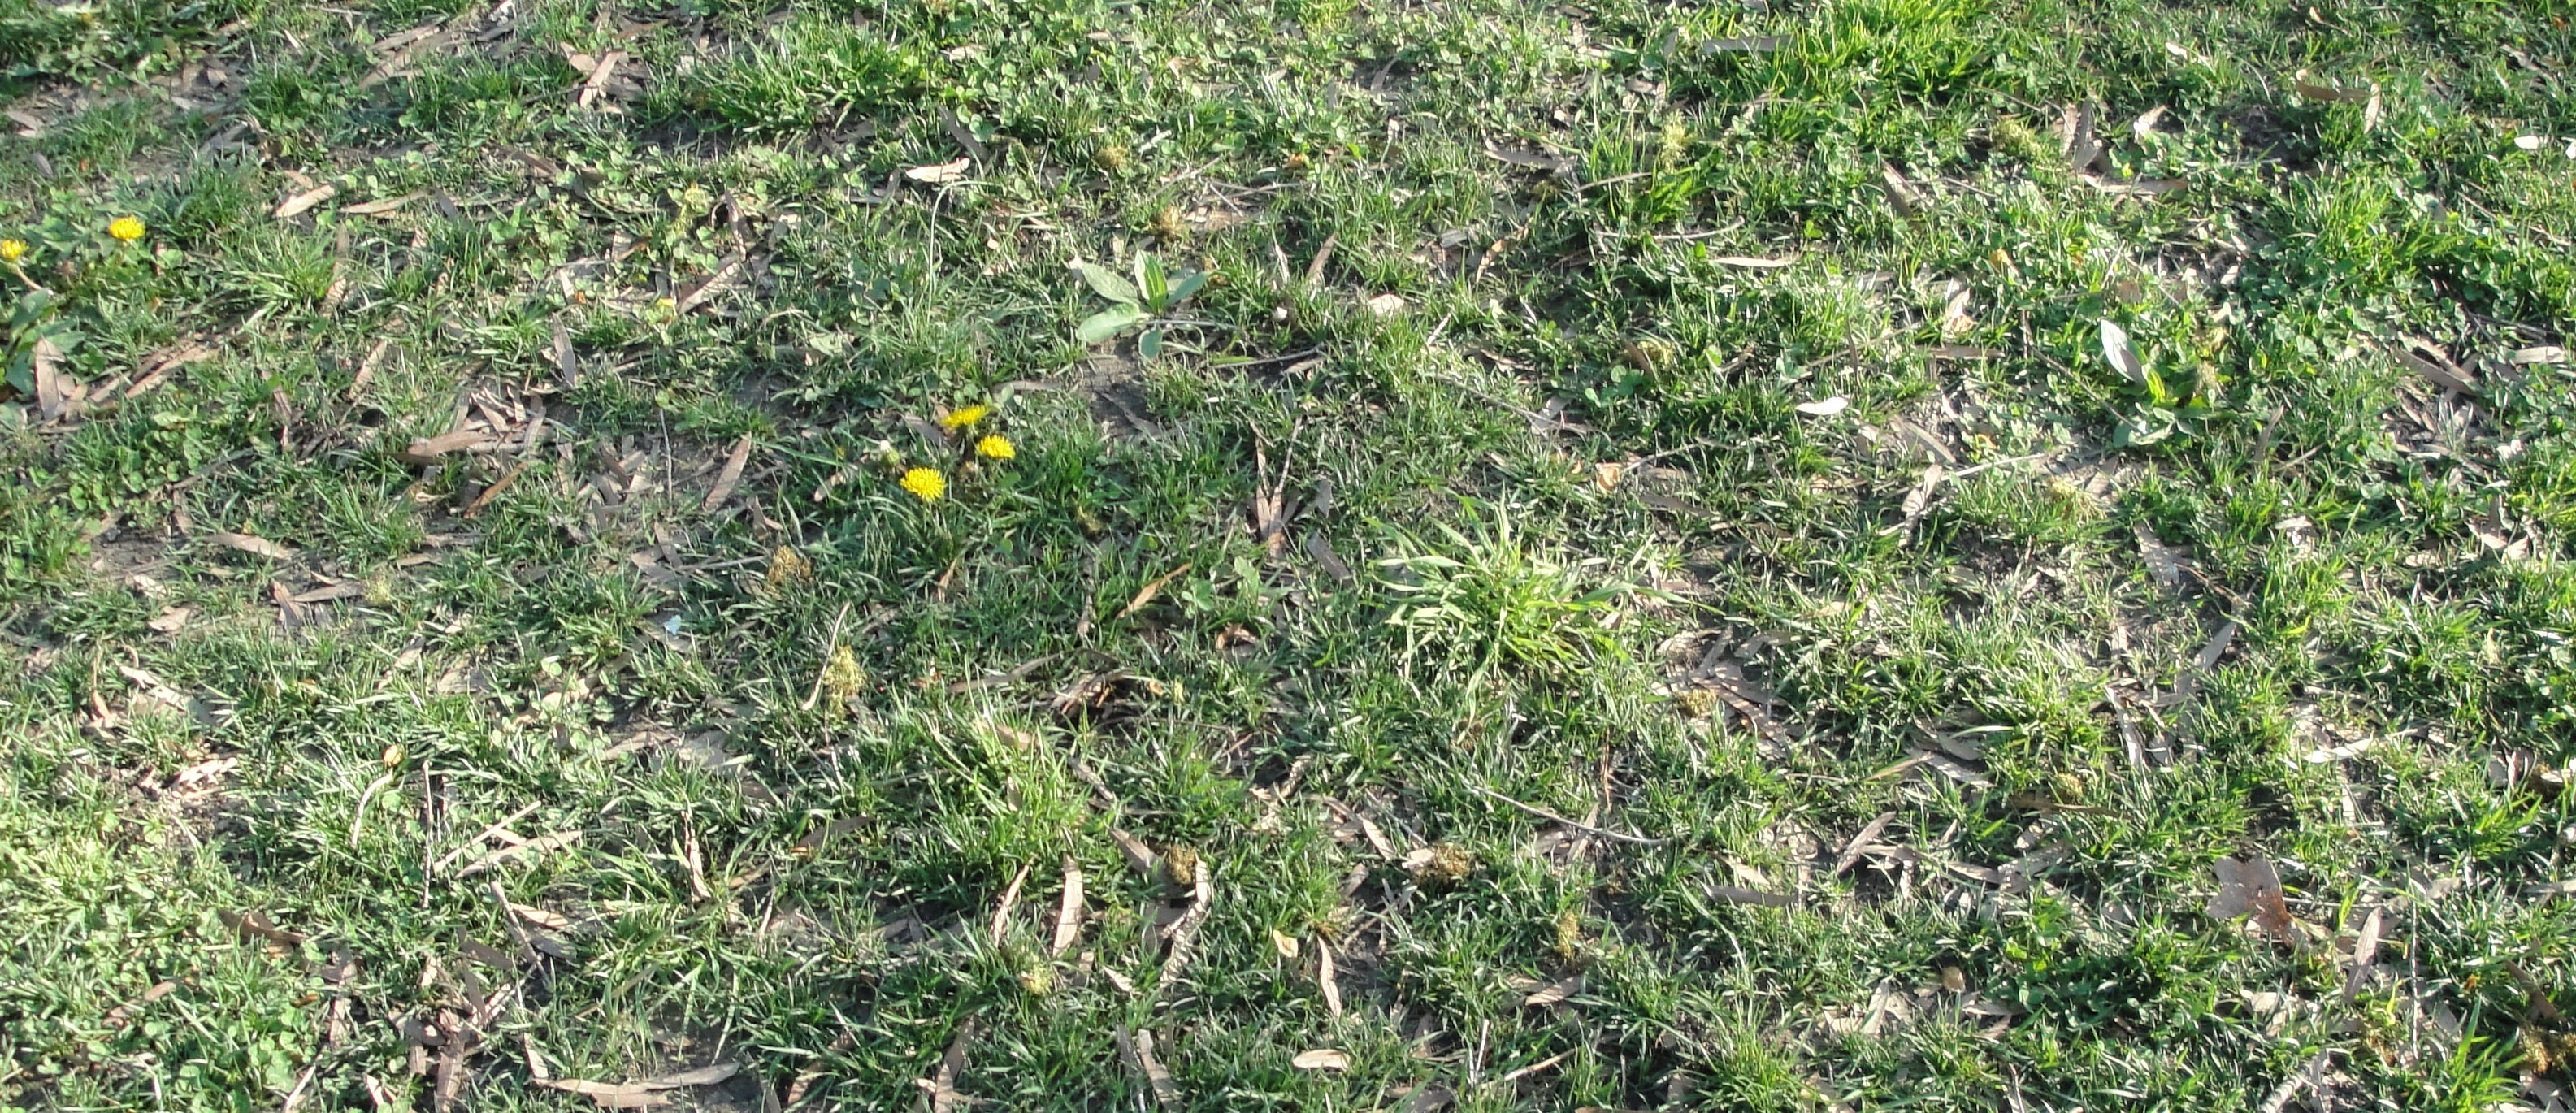 Mixed weedy lawn